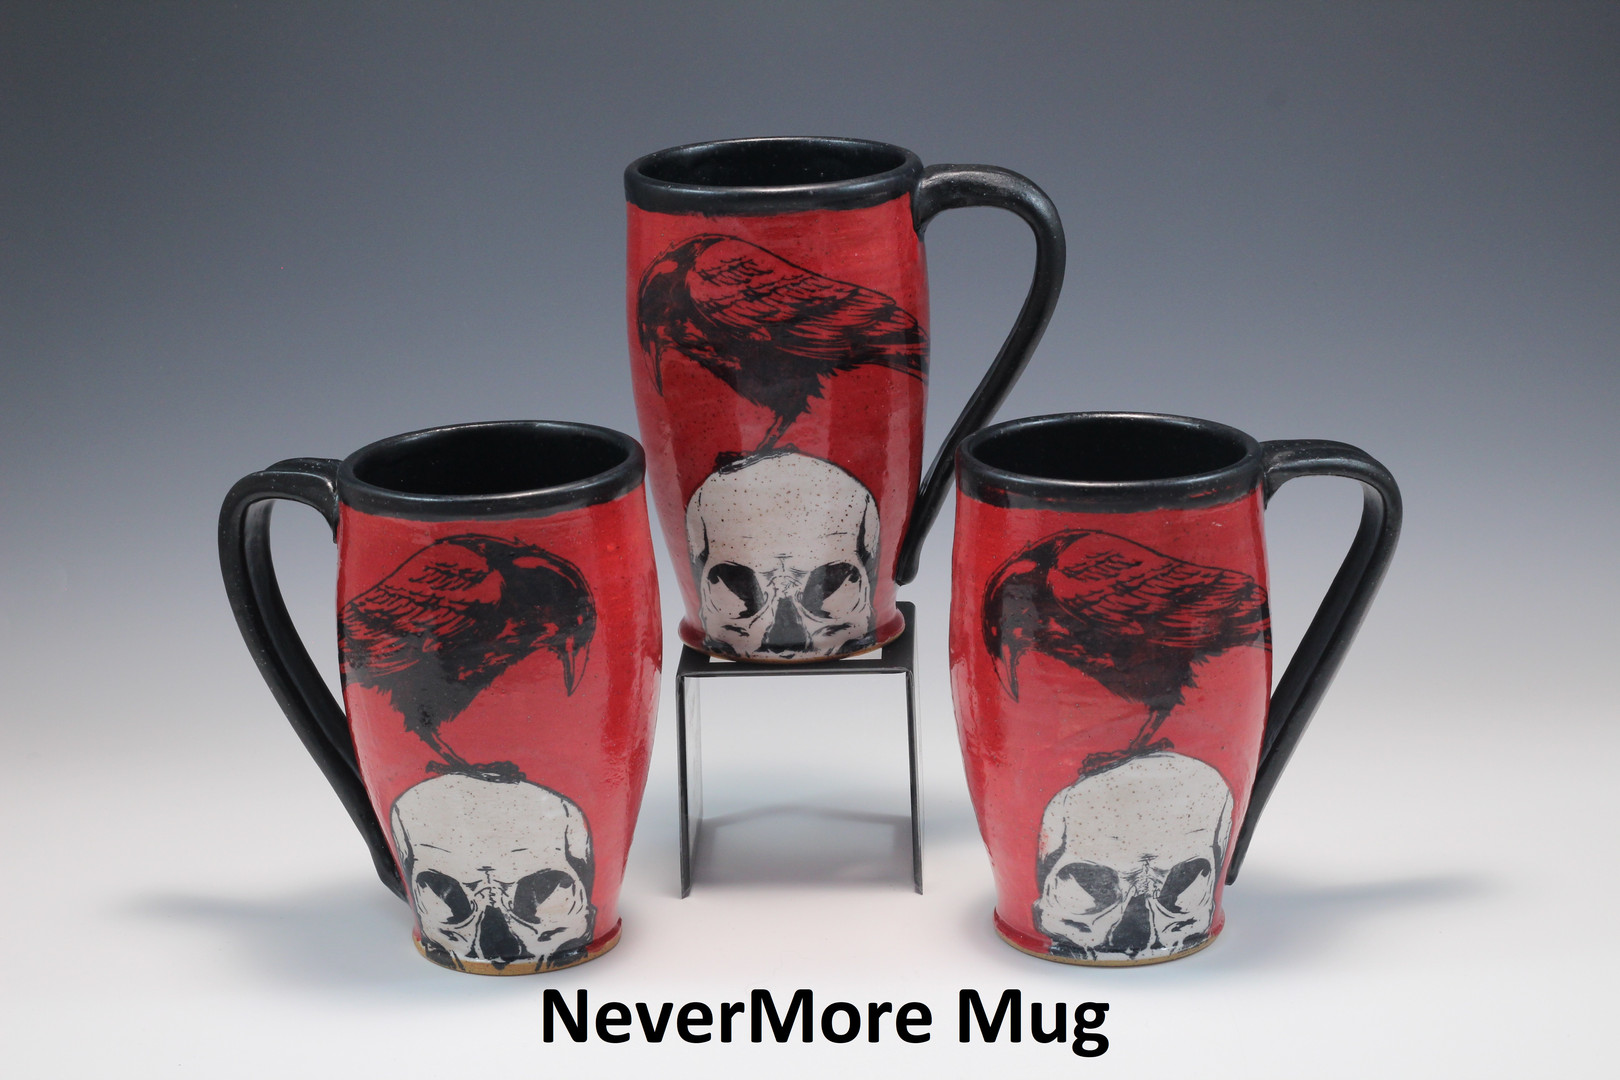 NeverMore Mugs